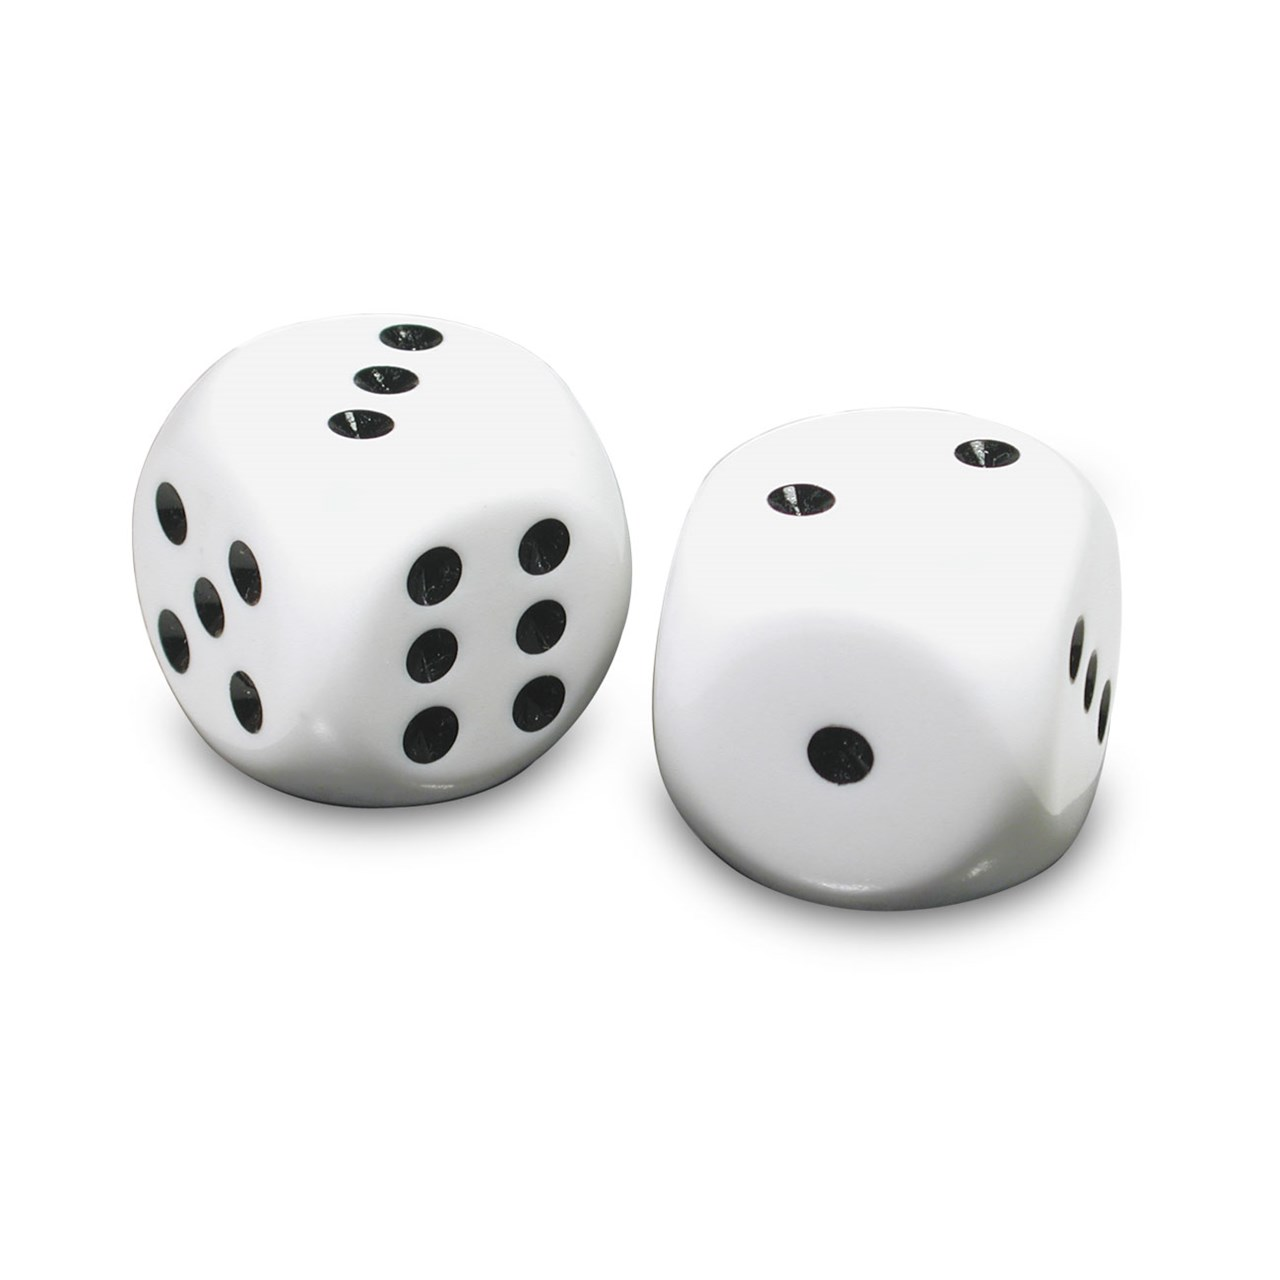 Maxiaids Low Vision Large Dice White With Black Dots